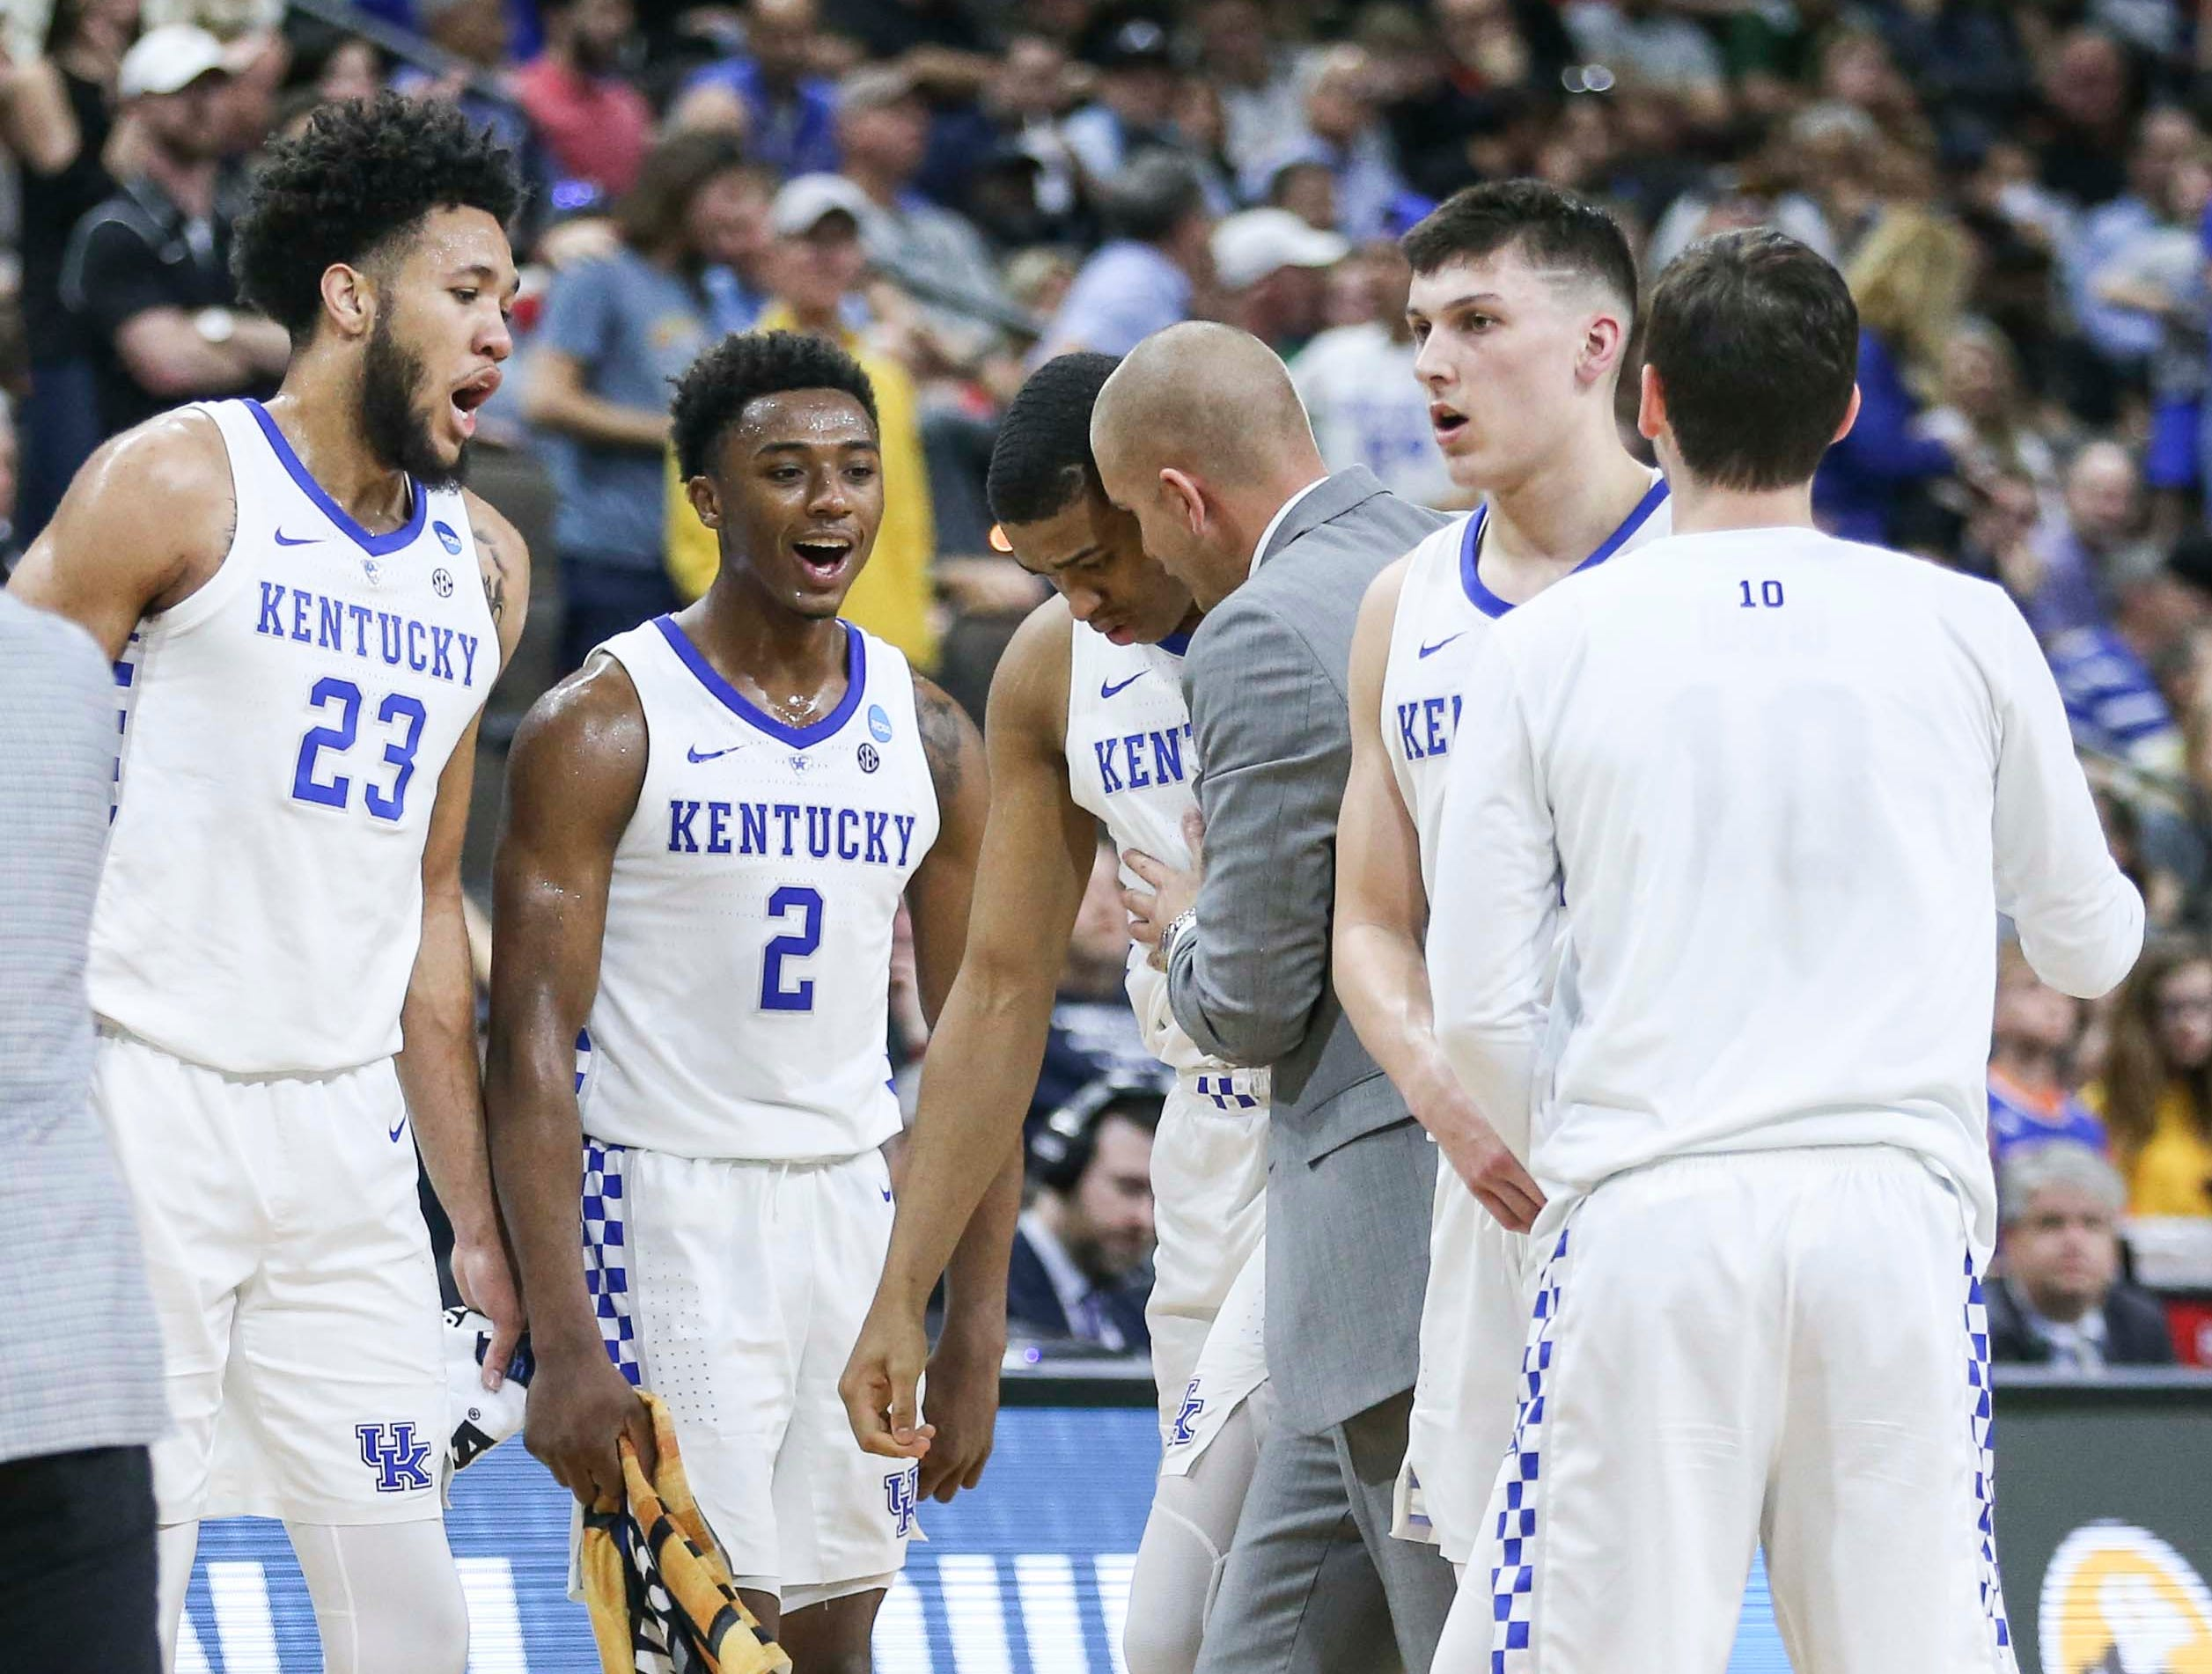 Kentucky's Keldon Johnson was surrounded by teammates during a time out in the Wildcats' 62-56 win in the second round game of the 2019 NCAA tournament in Jacksonville, Fla. March 23, 2019